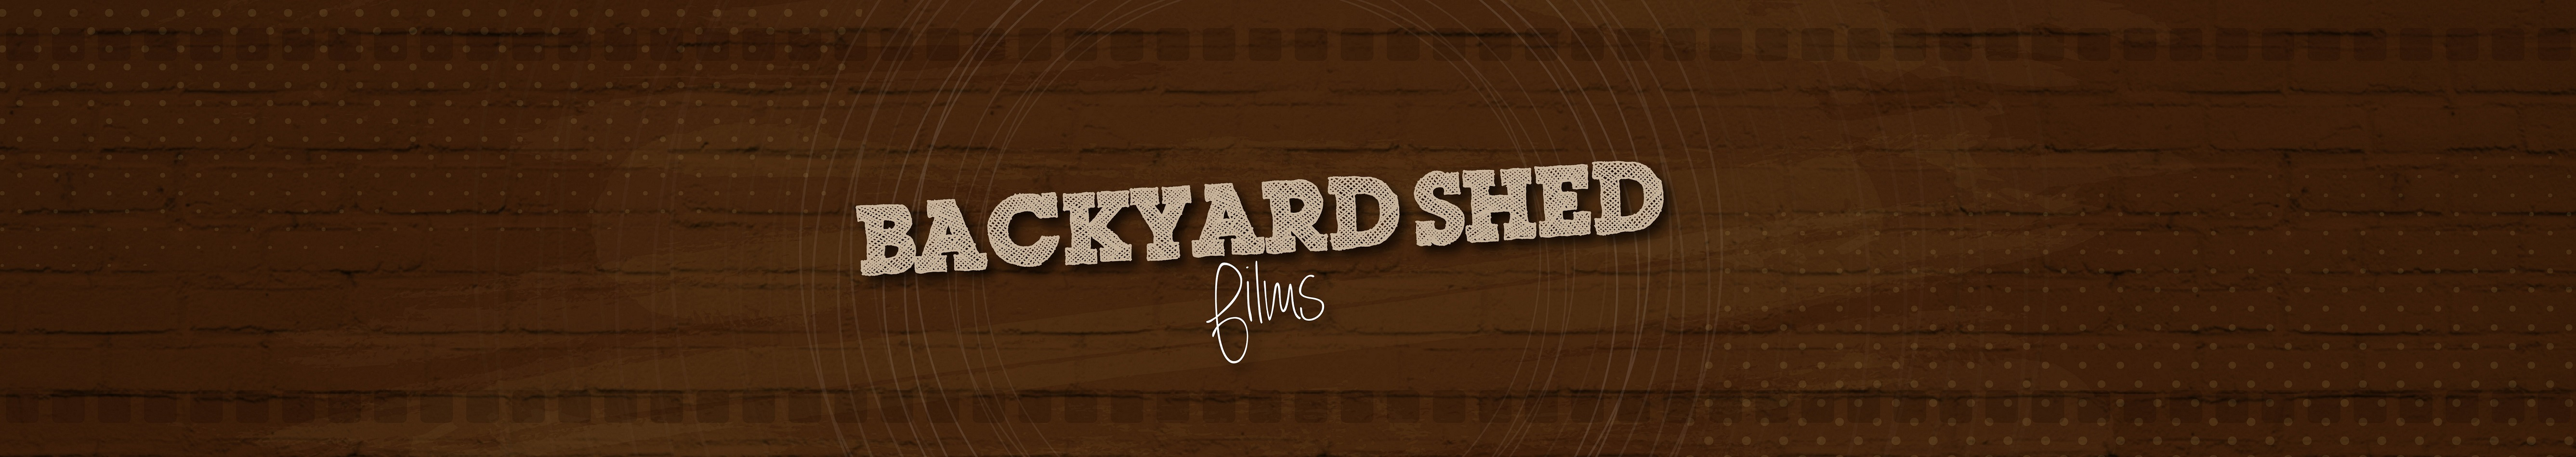 Contact Us | Backyard Shed Films